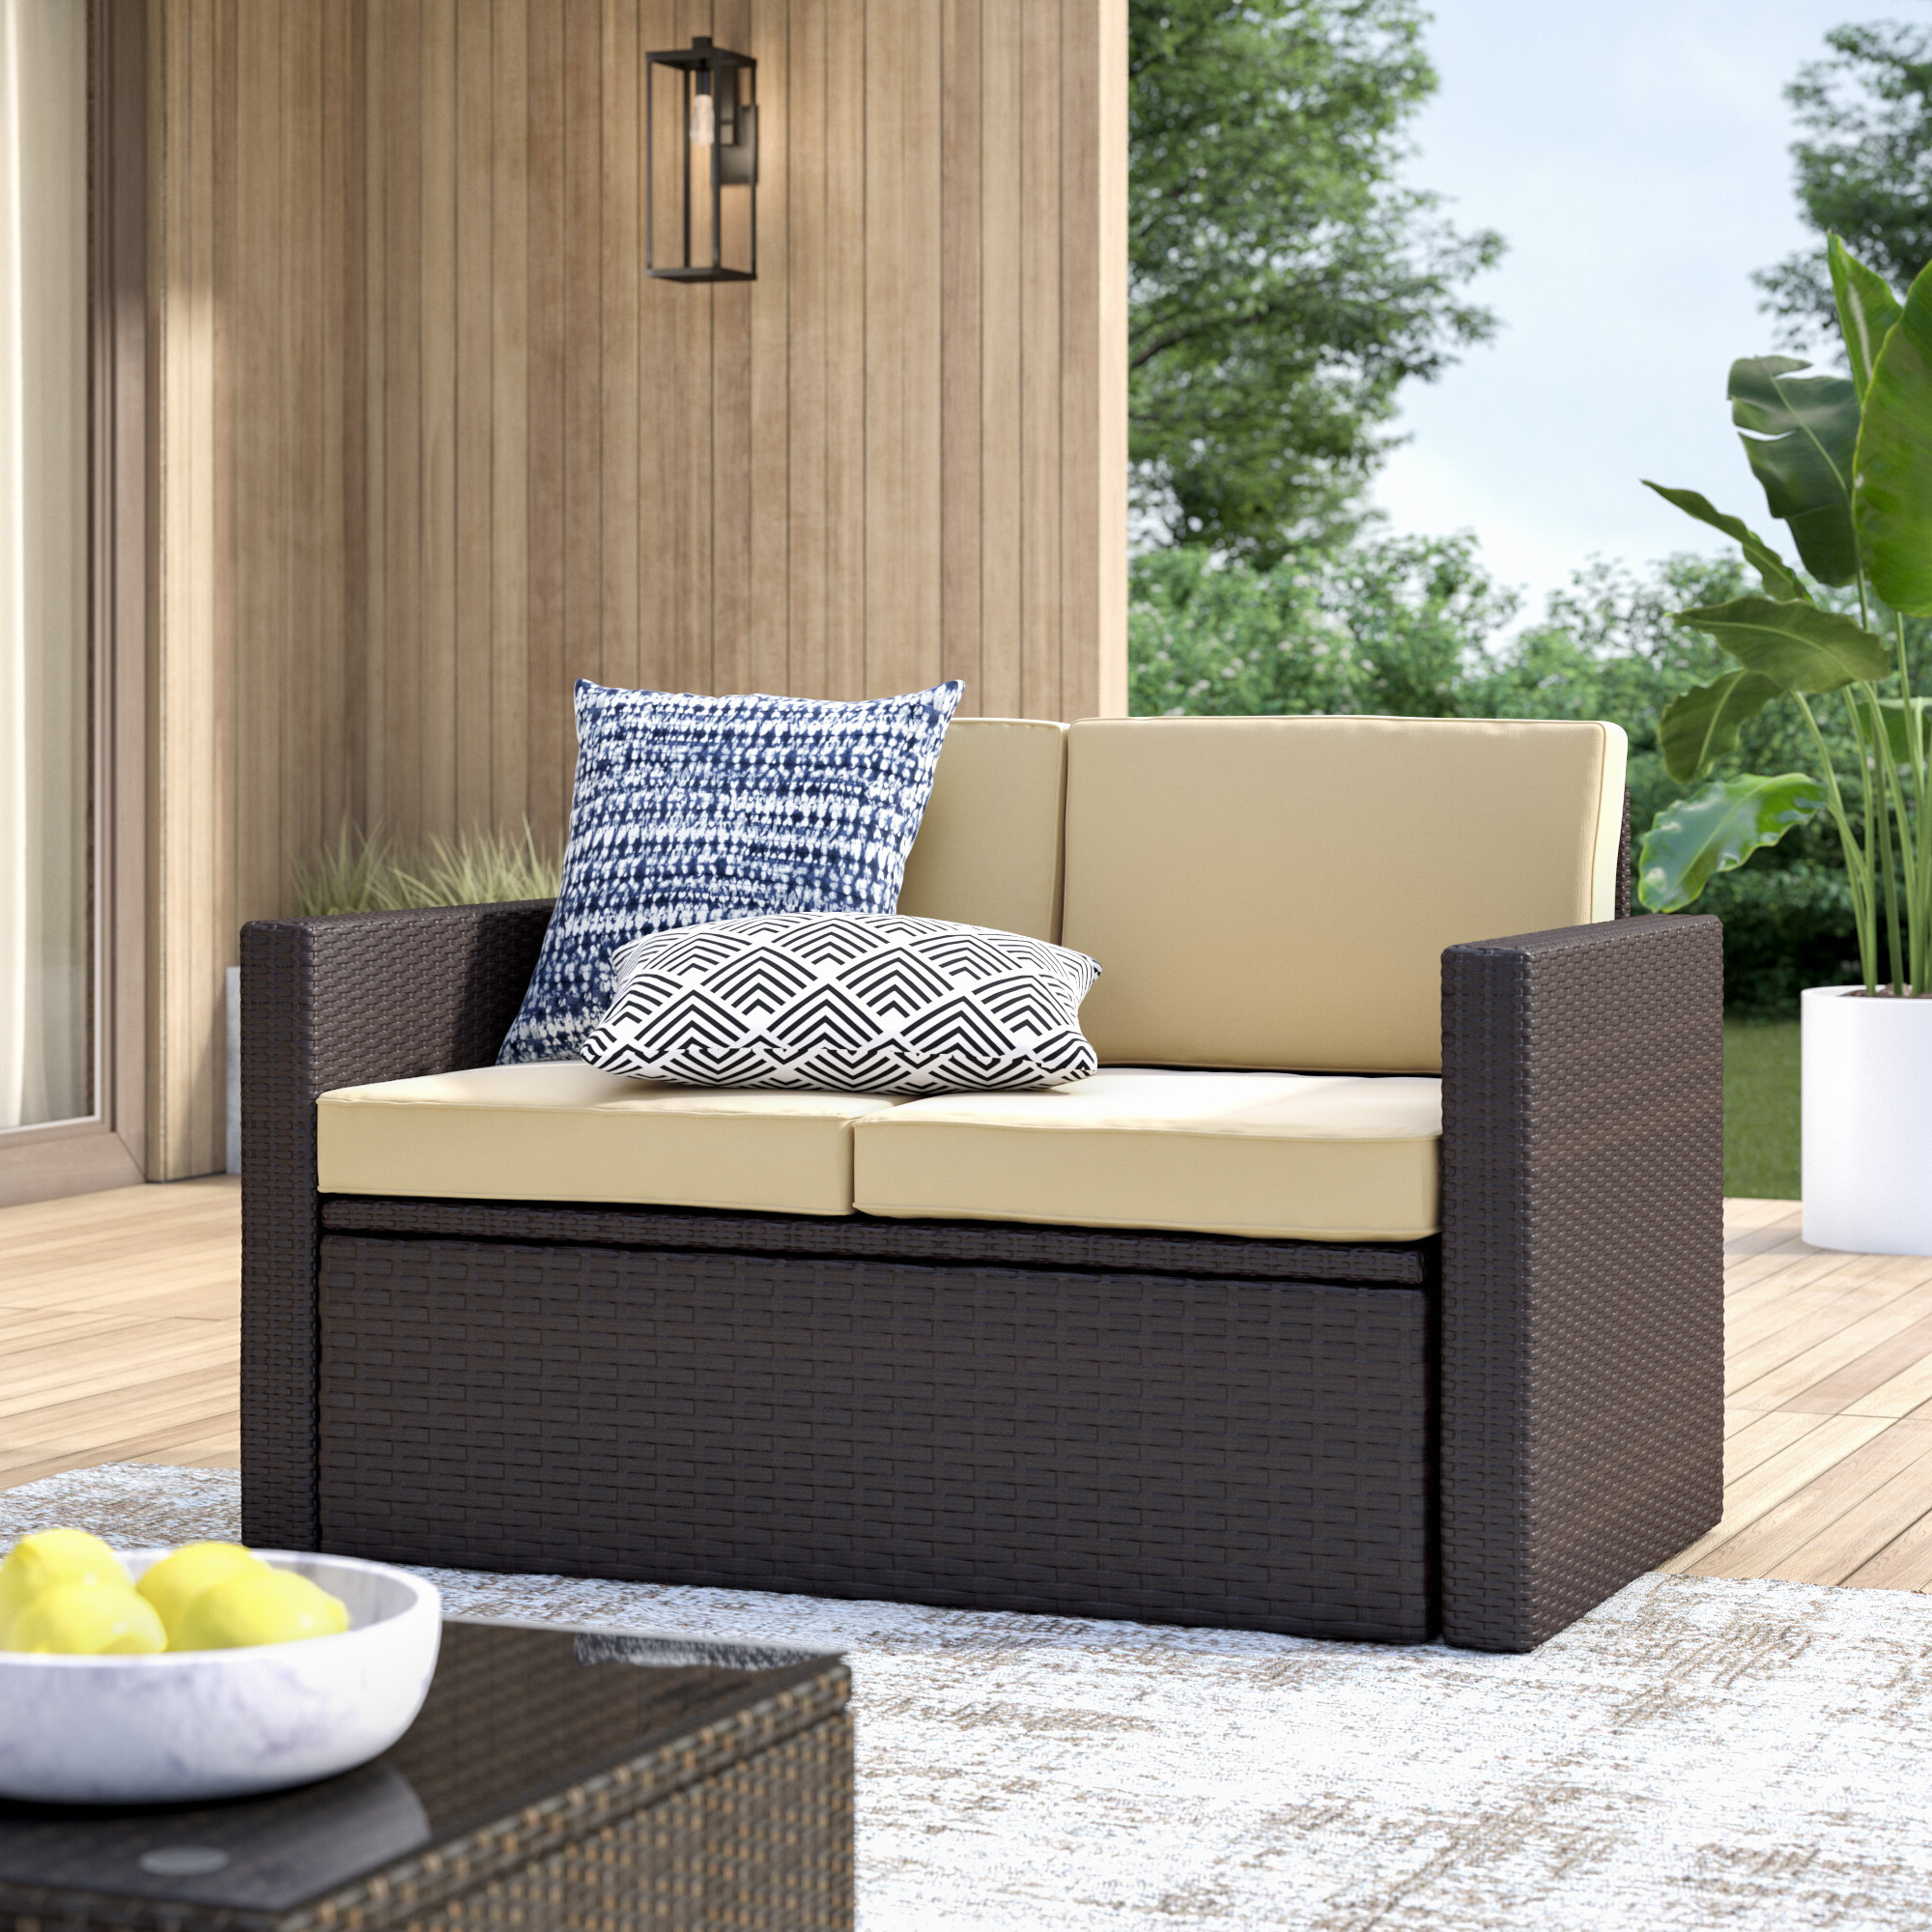 Well Known Englewood Loveseats With Cushions Regarding Belton Loveseat With Cushions (View 18 of 20)